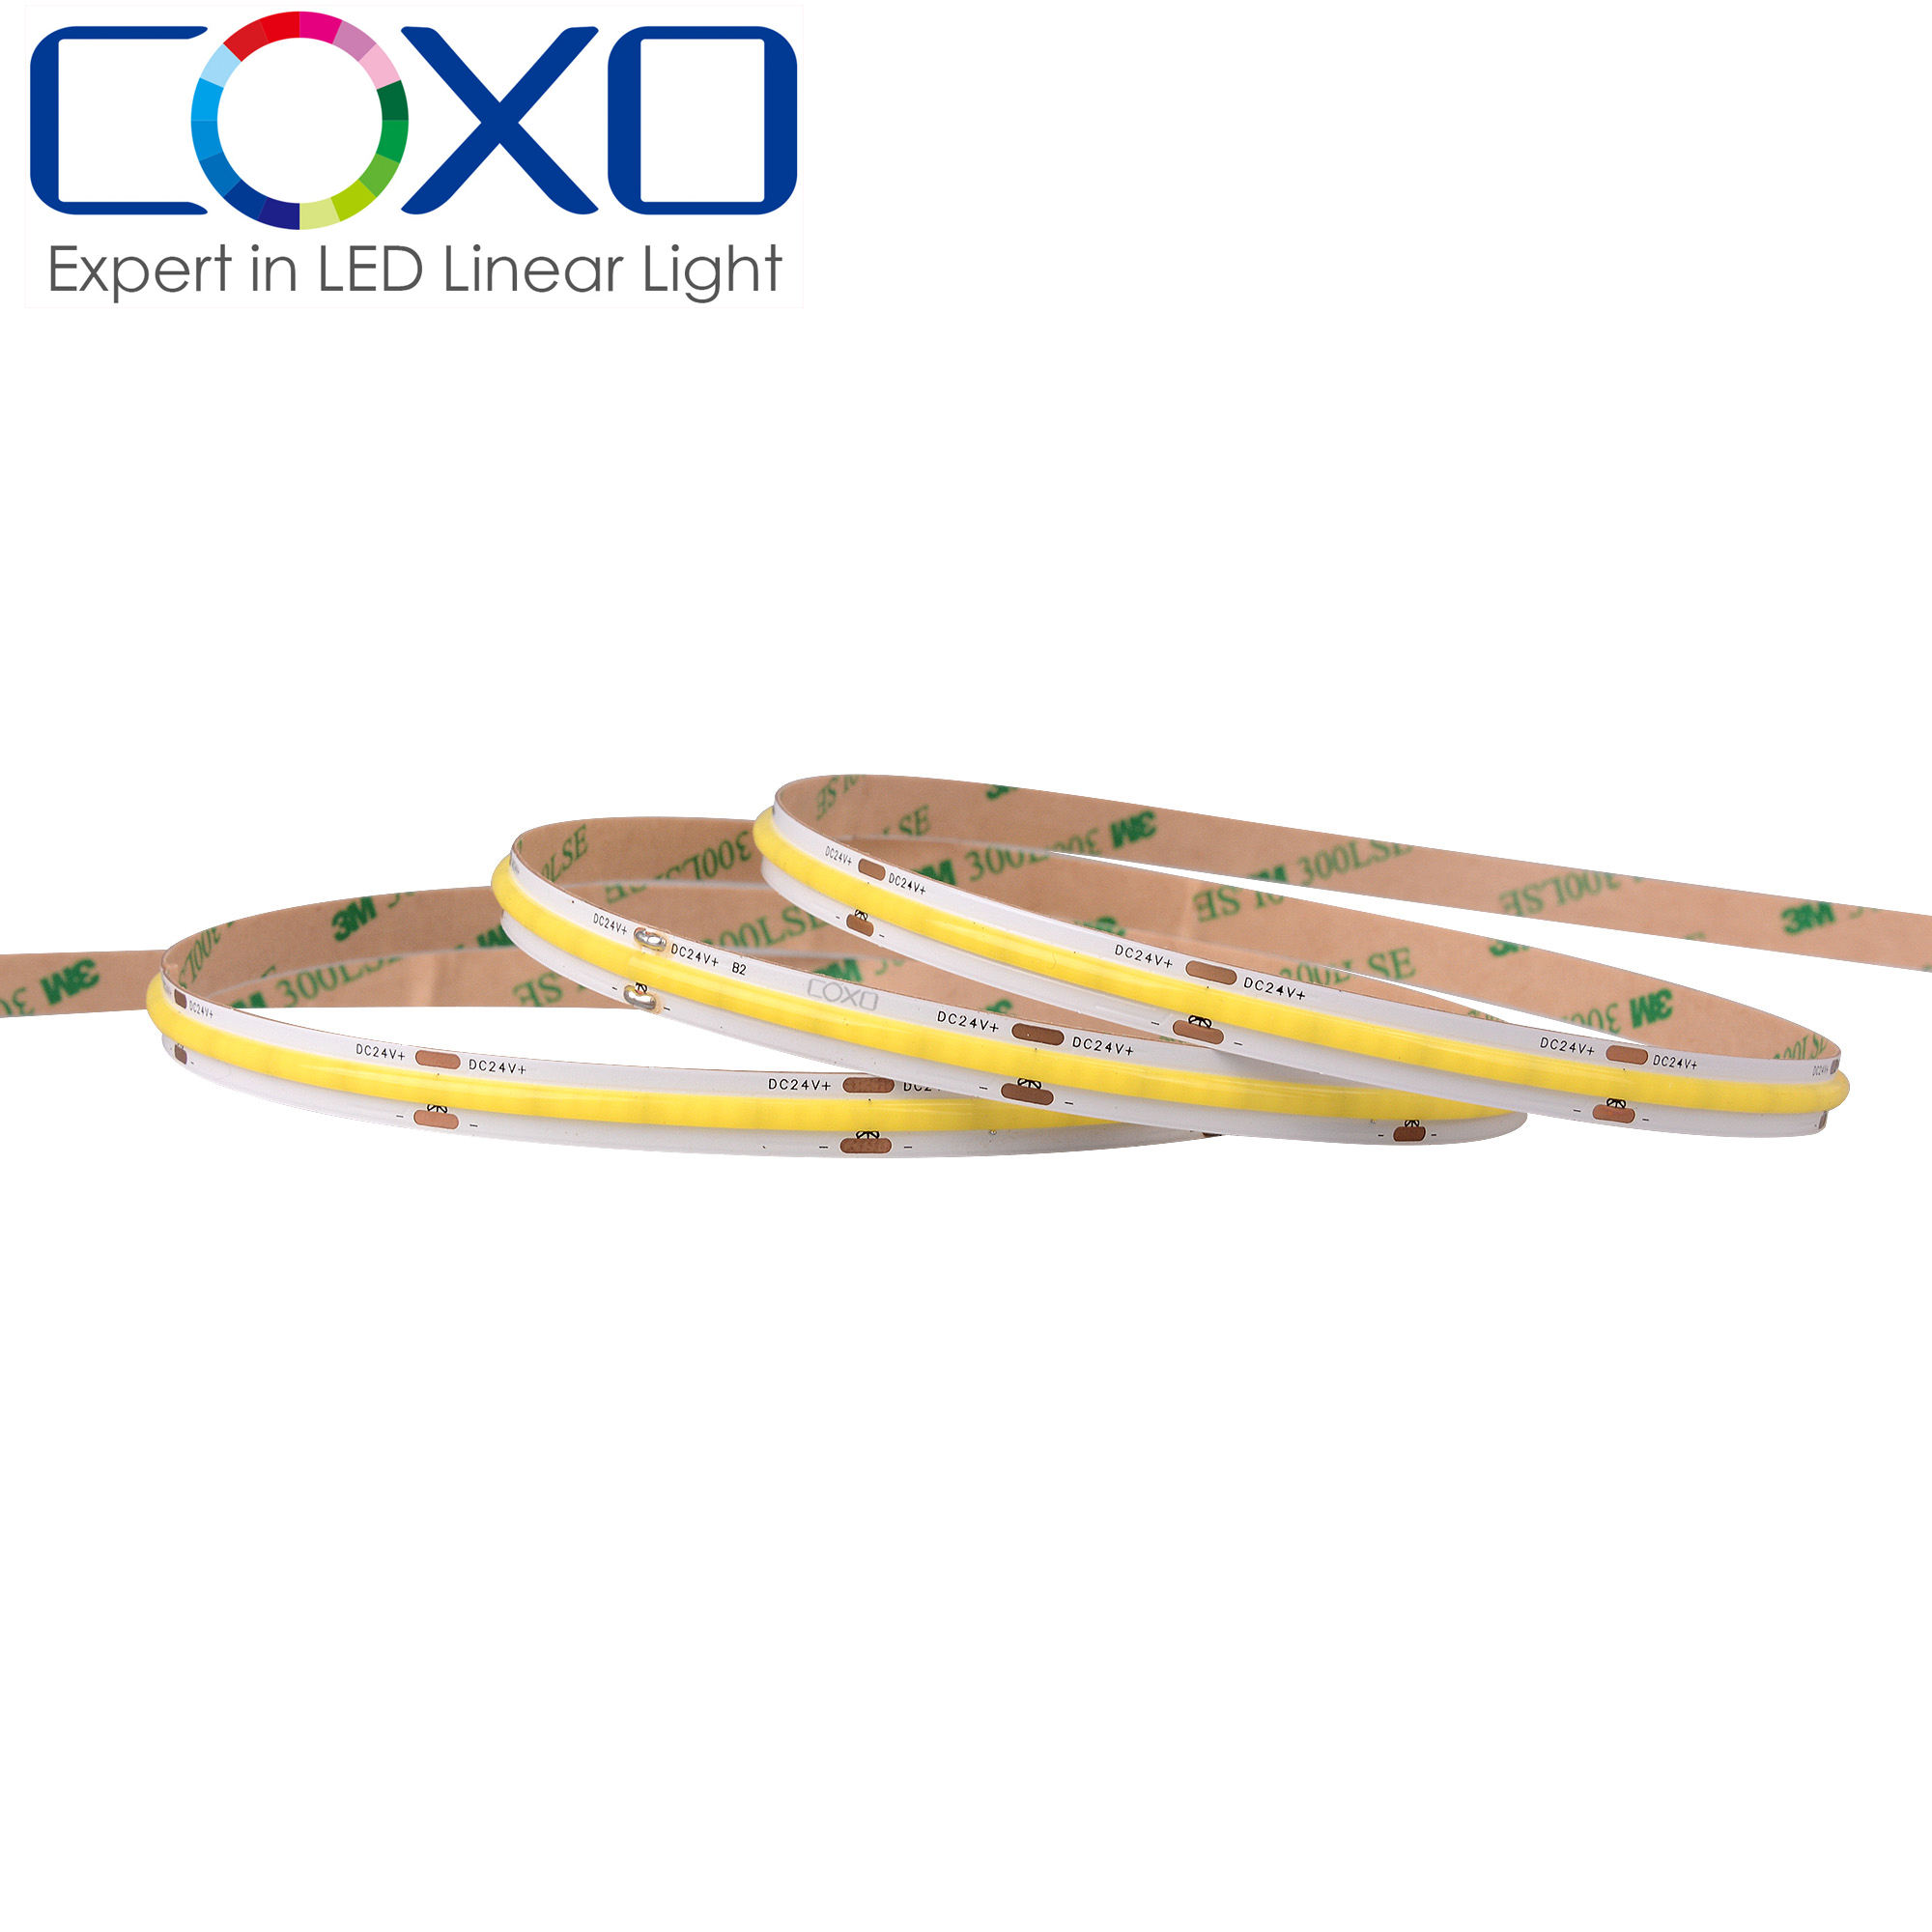 Tira de luces led COB para el hogar, flexible, impermeable, IP67, 12v, 24v